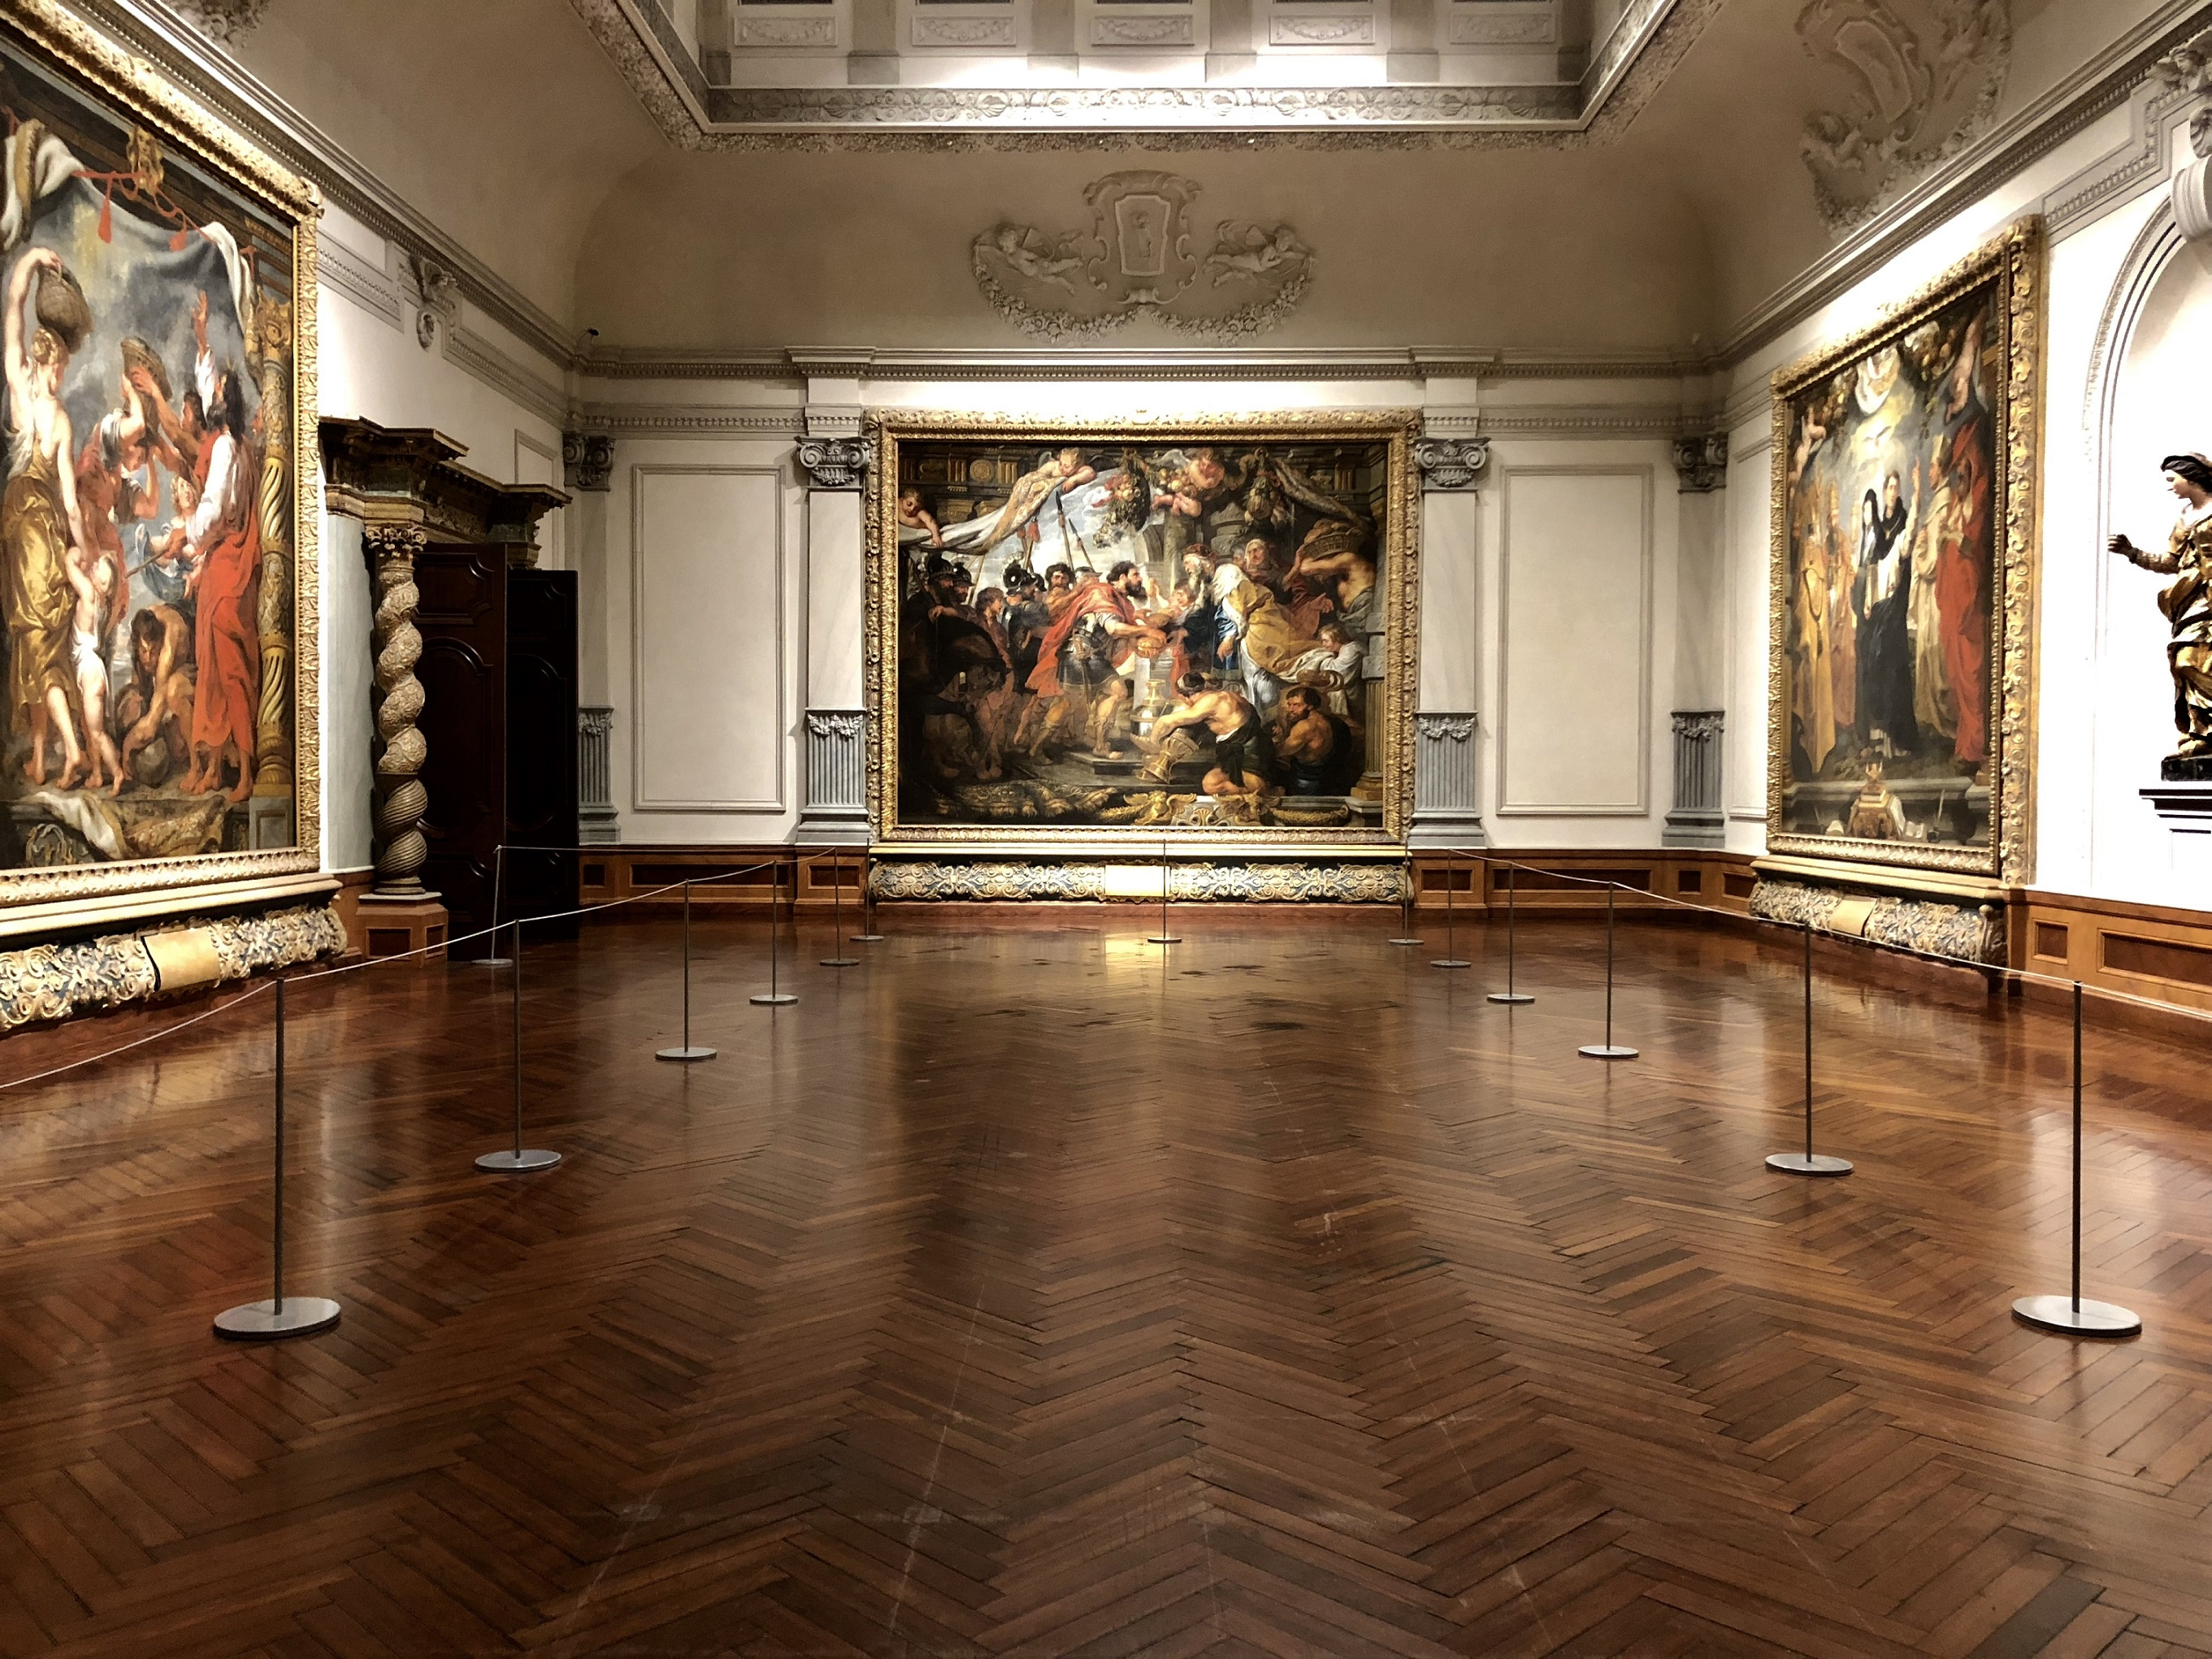 Gallery 1 and 2 of the John and Mable Ringling Museum of Art houses the Triumph of the Eucharist series by Peter Paul Rubens